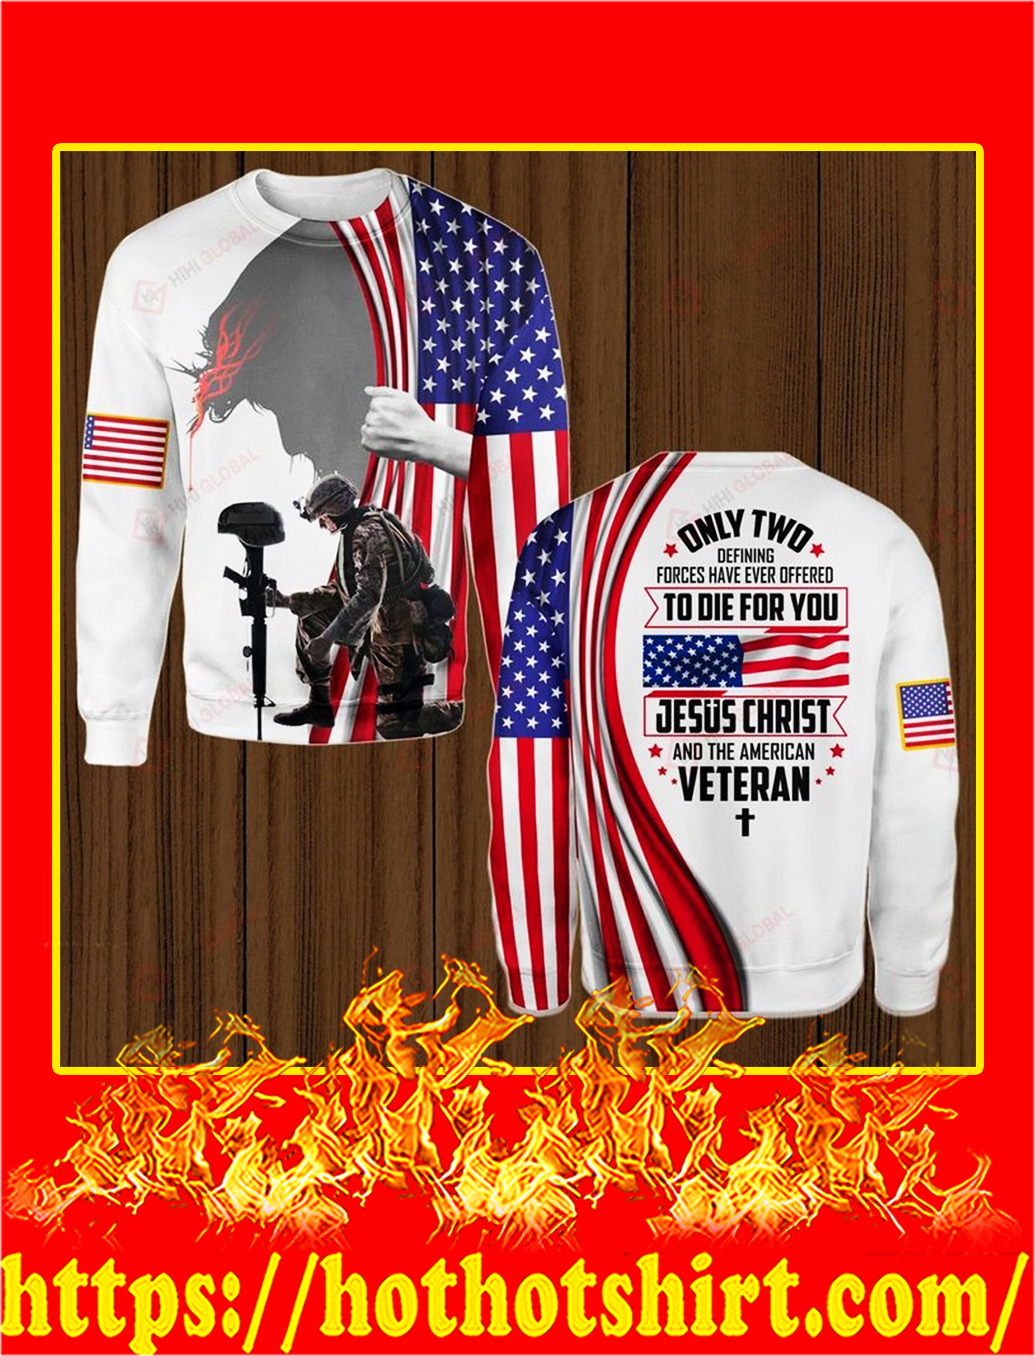 Only two defining forces have ever offered to die for you jesus christ and the american veteran all over printed sweatshirt